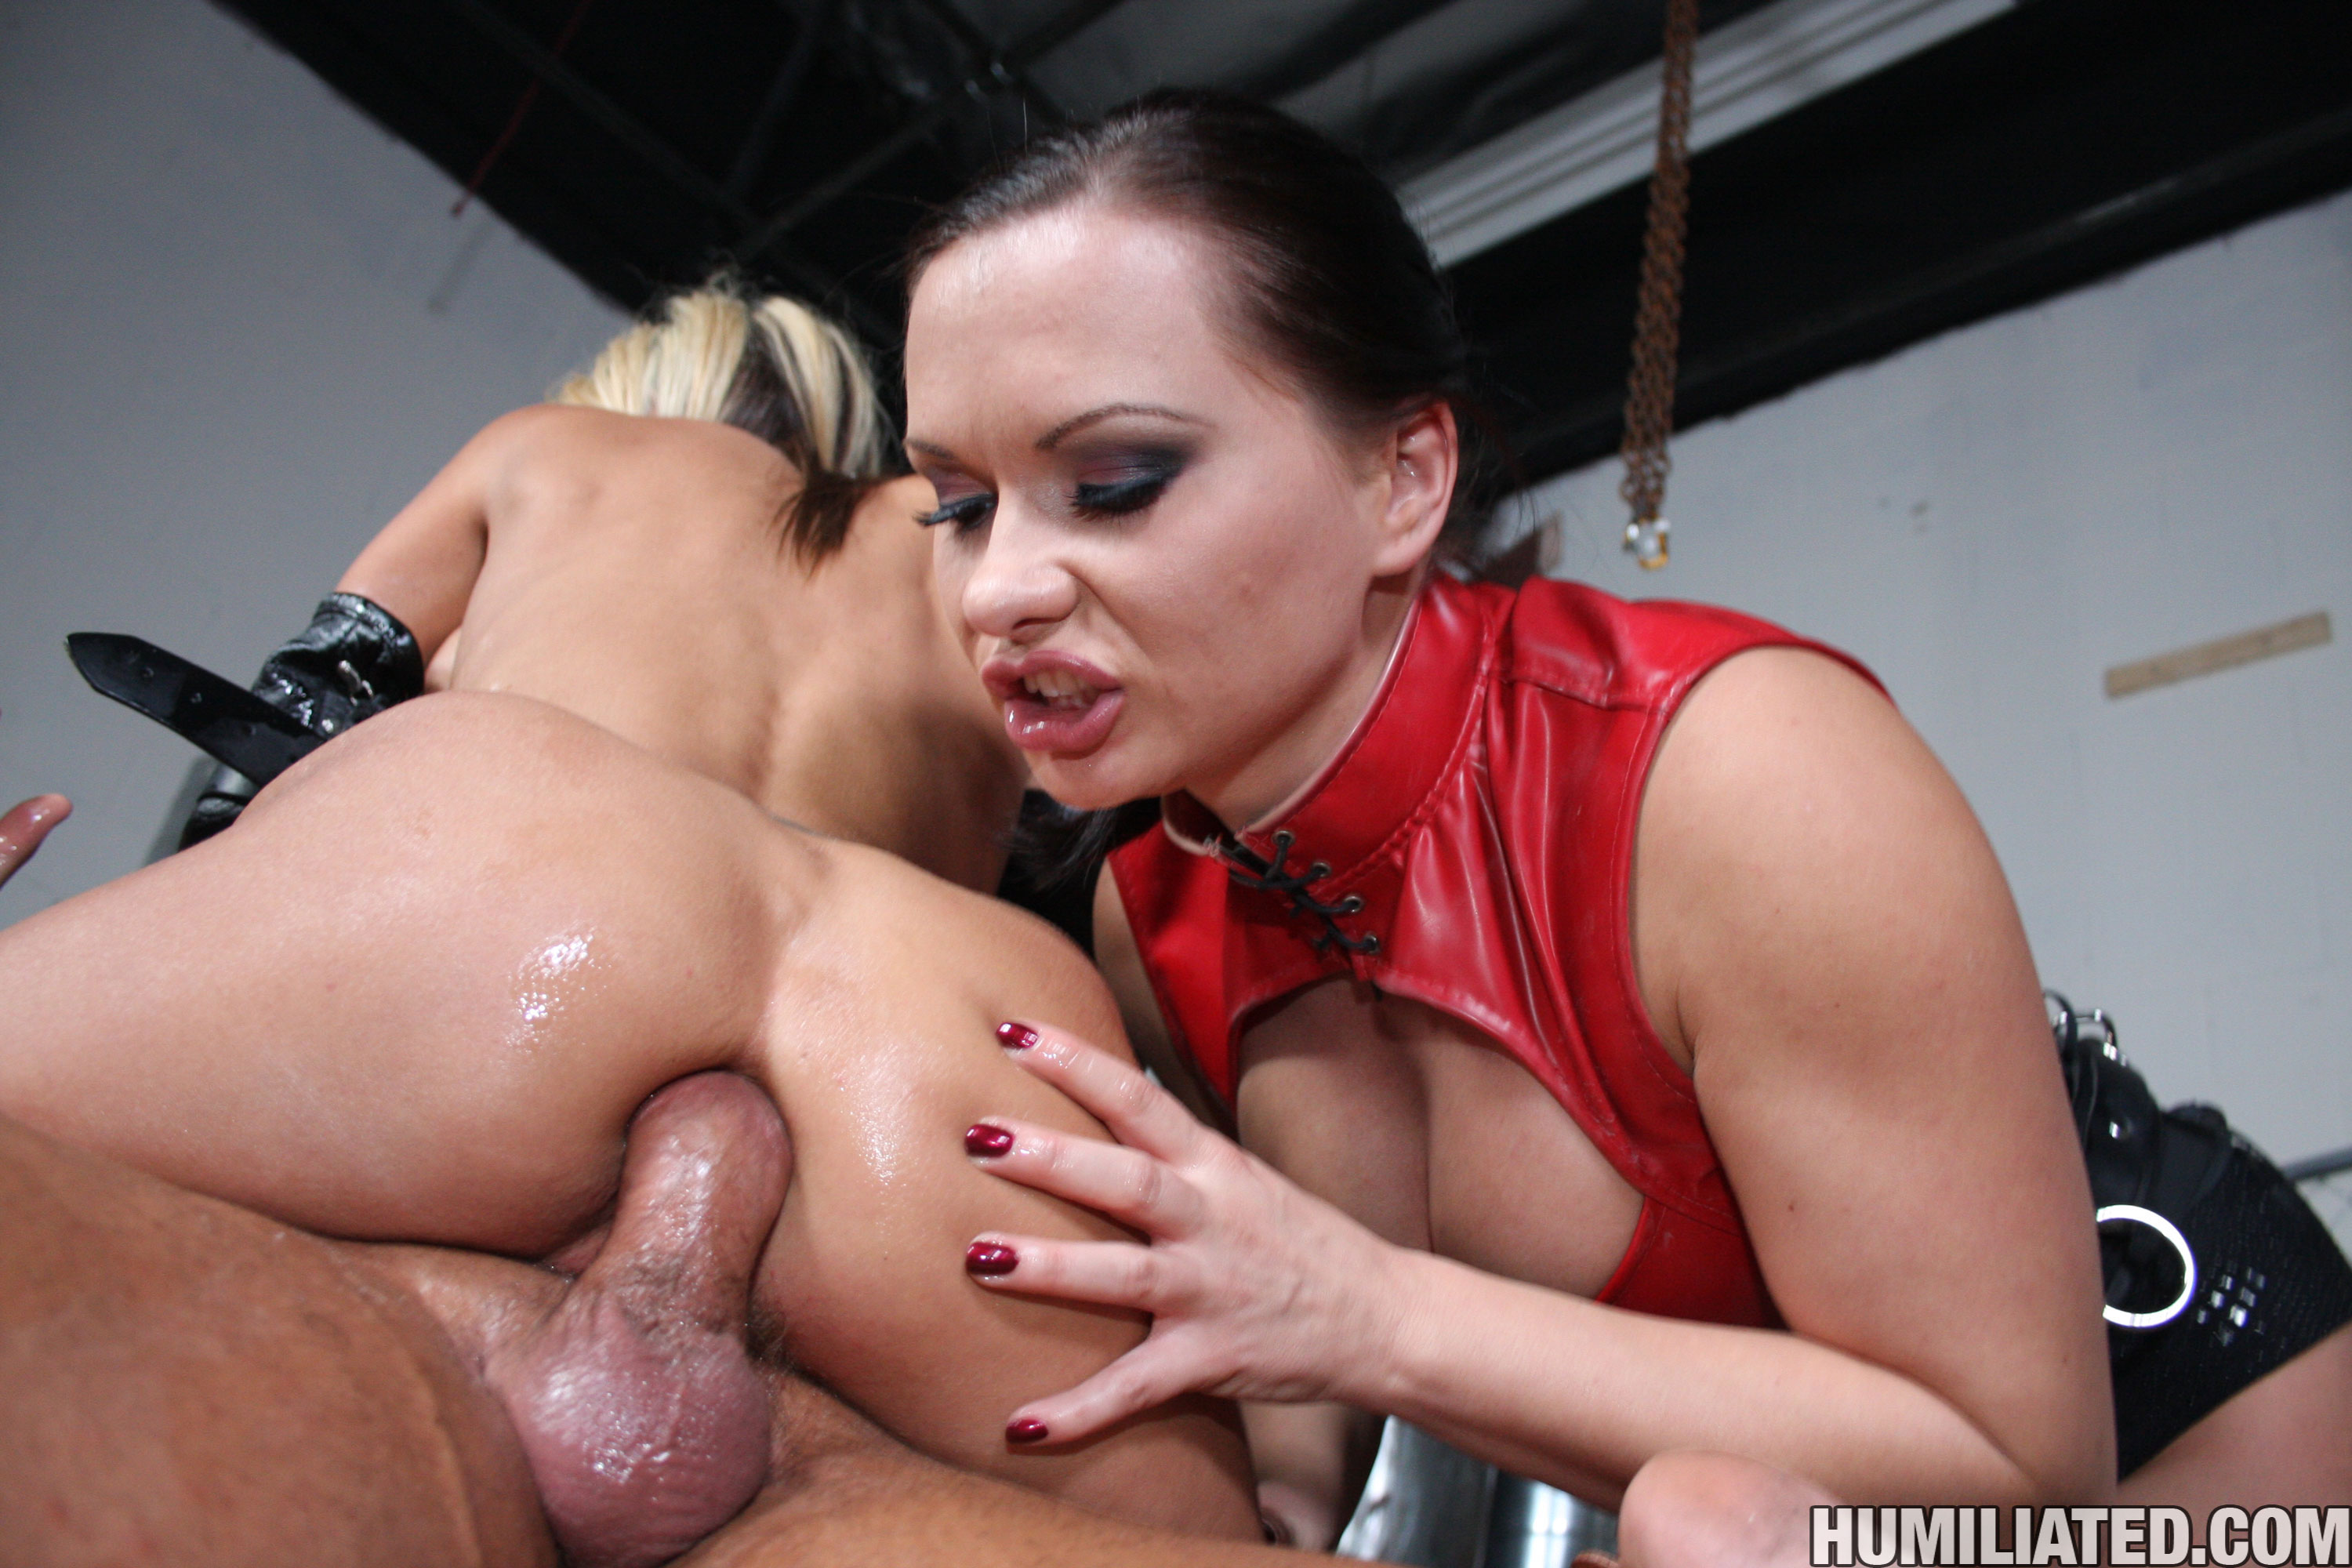 Double blowjob shared fucking model